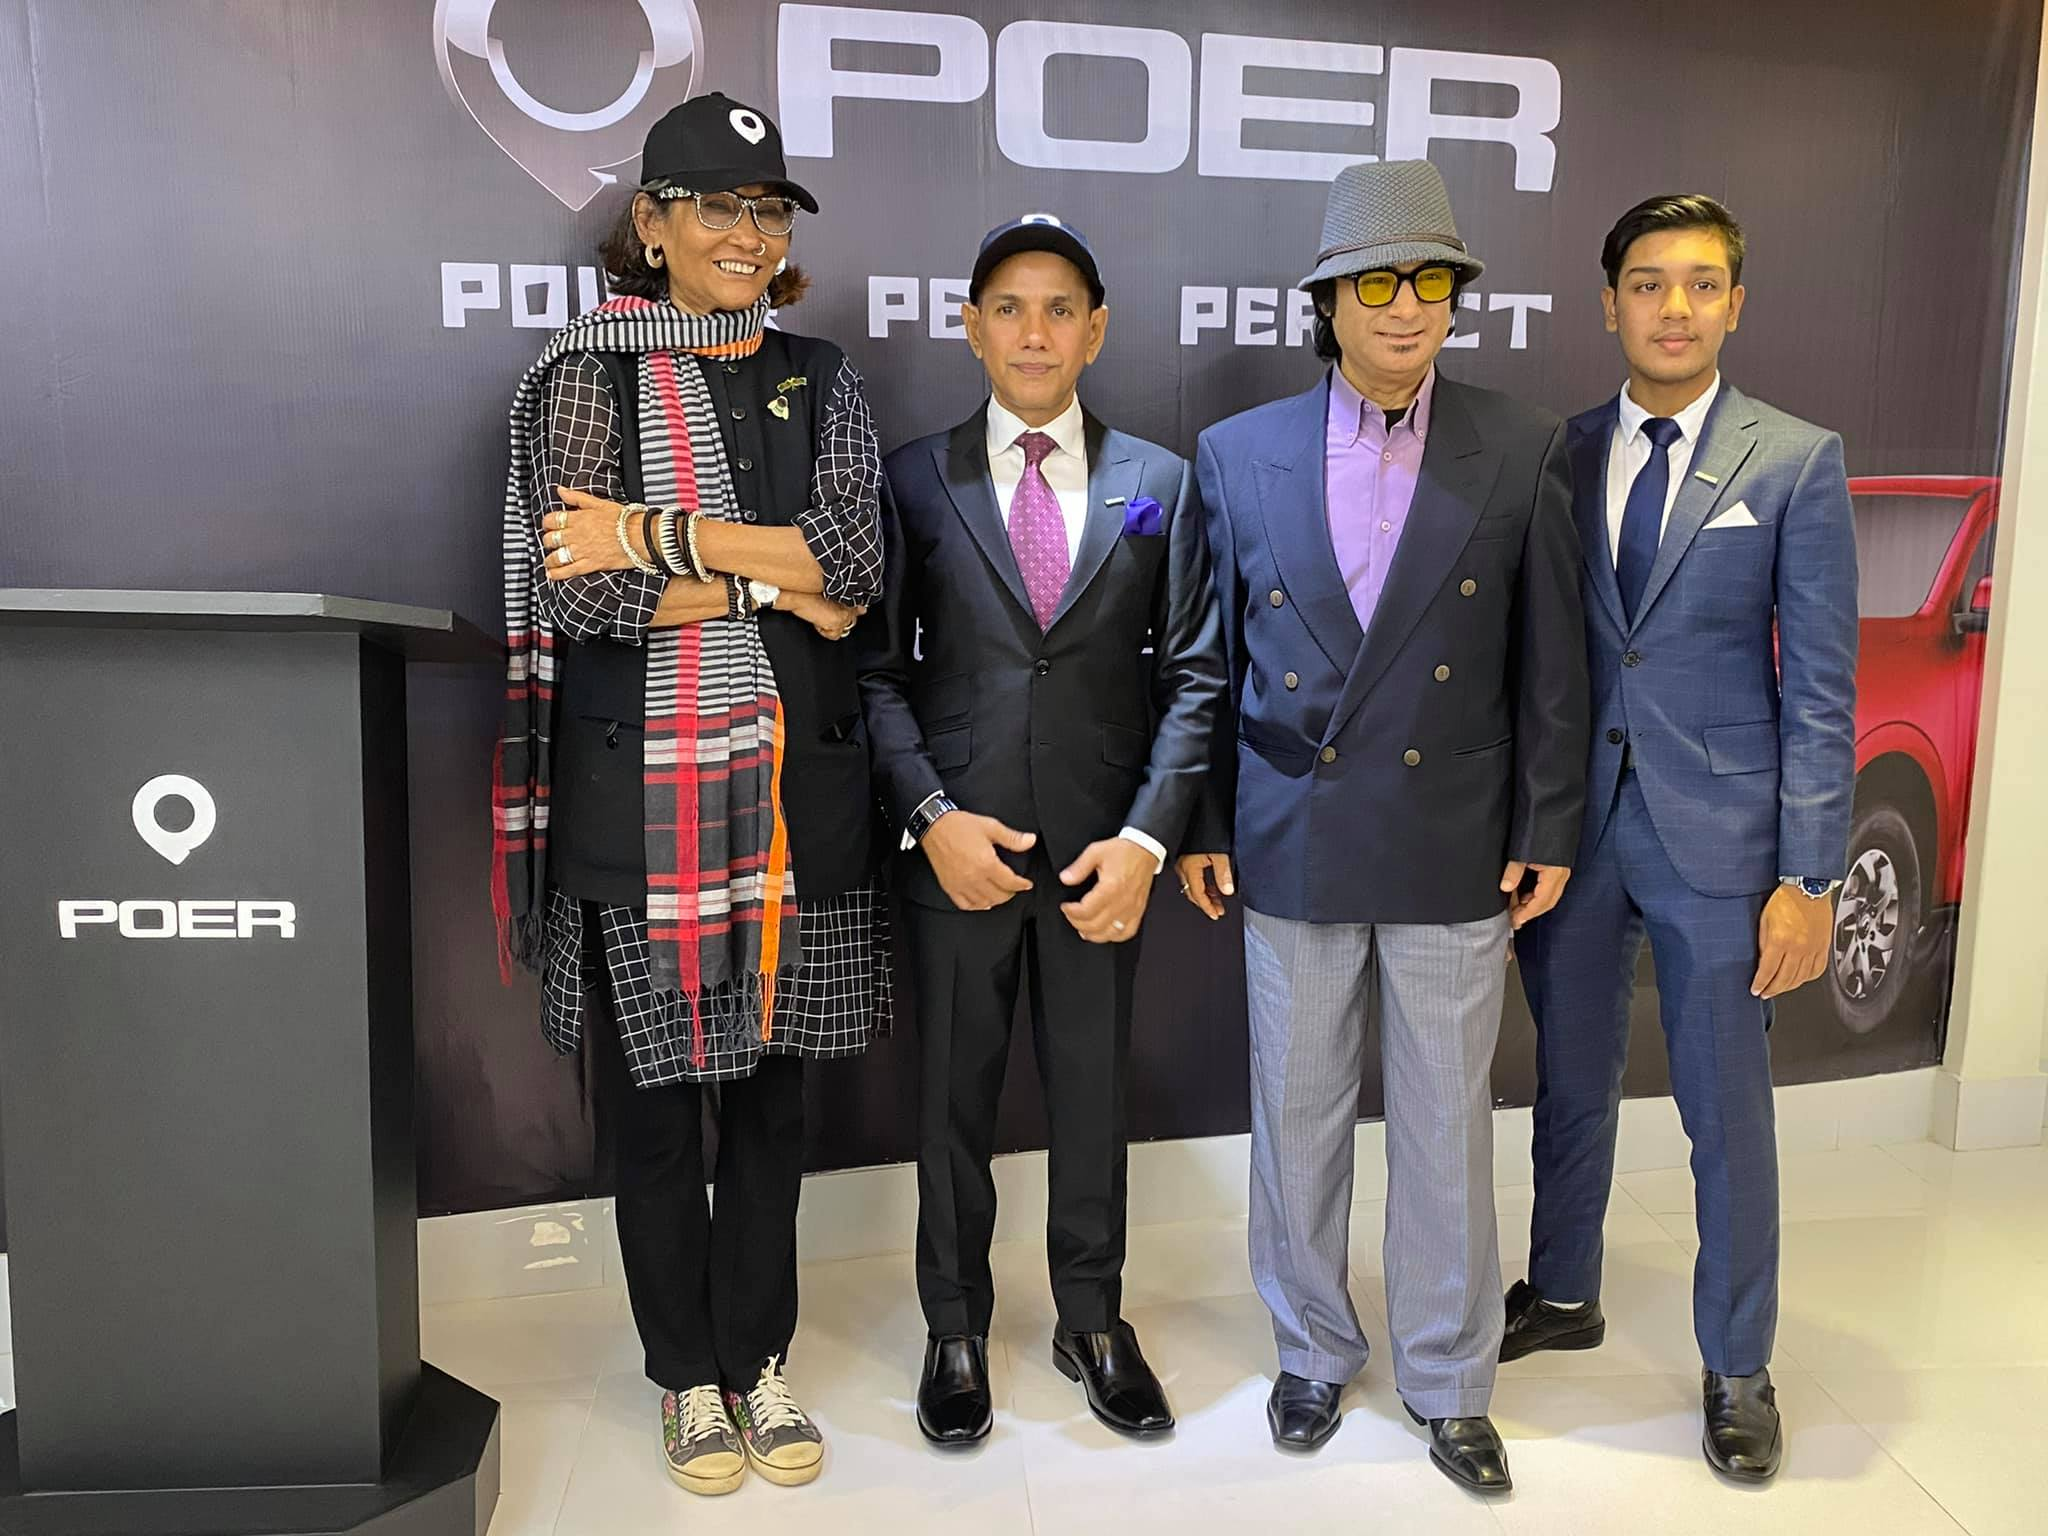 Poer launching images selected by CEO sir (7)